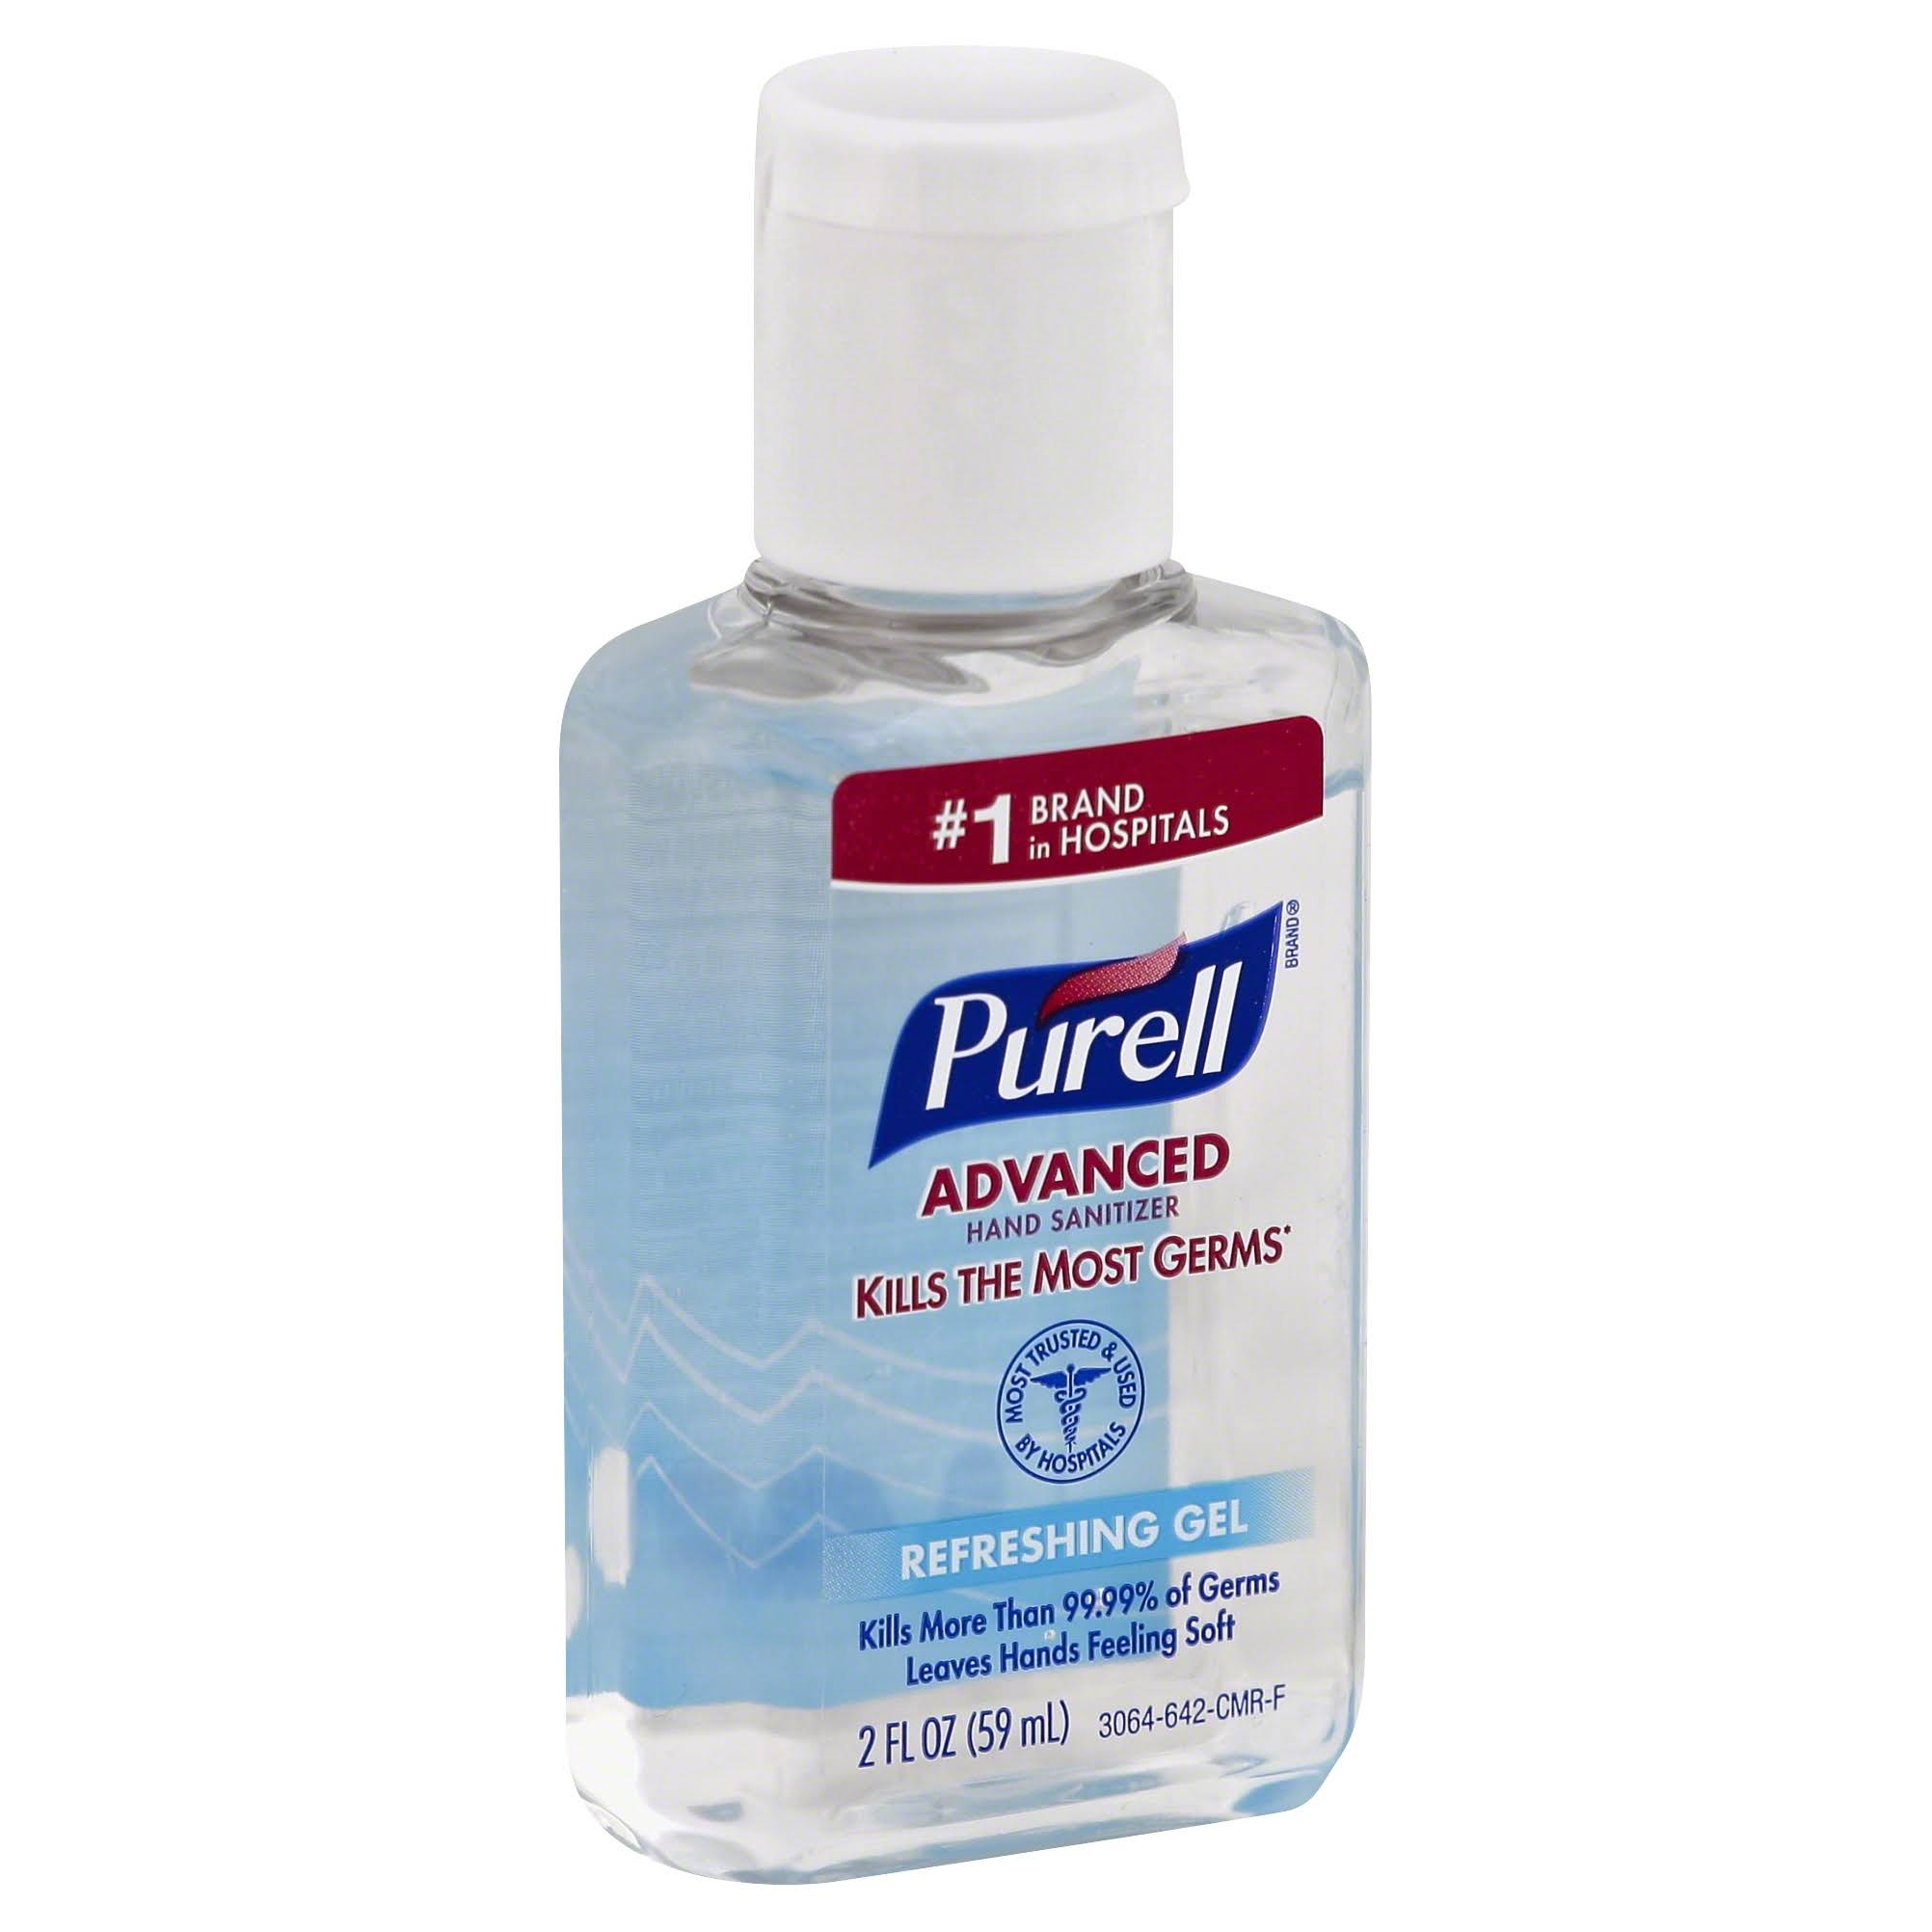 Purell Hand Sanitizer, Advanced, Refreshing Gel - 2 fl oz